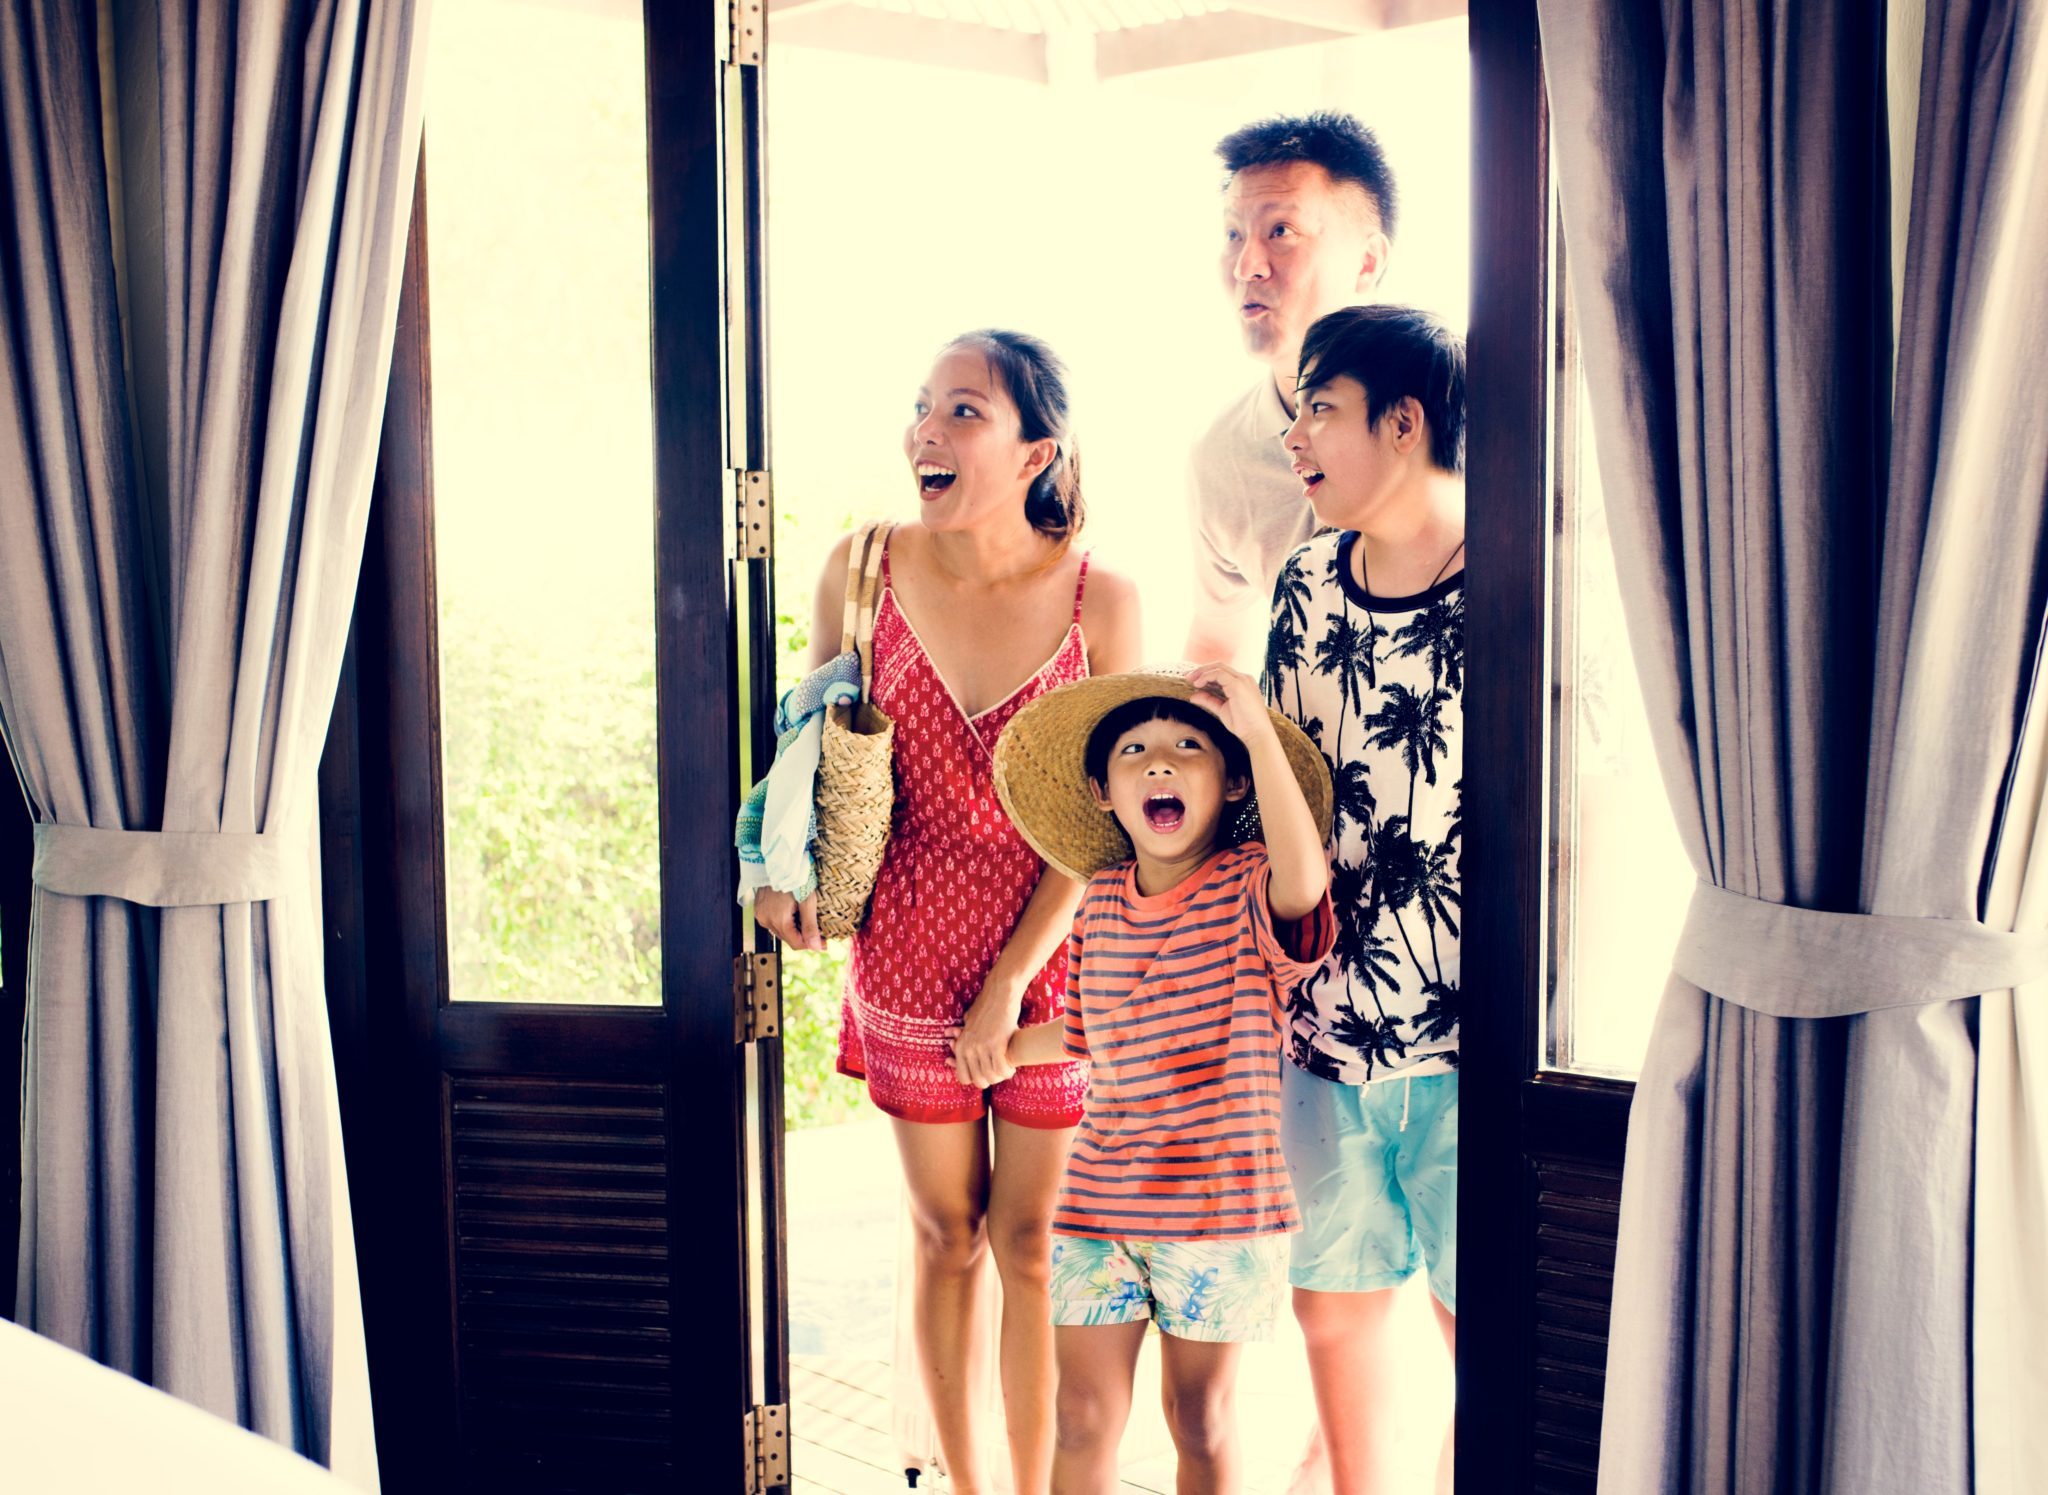 family excited to see their hotel room playtime